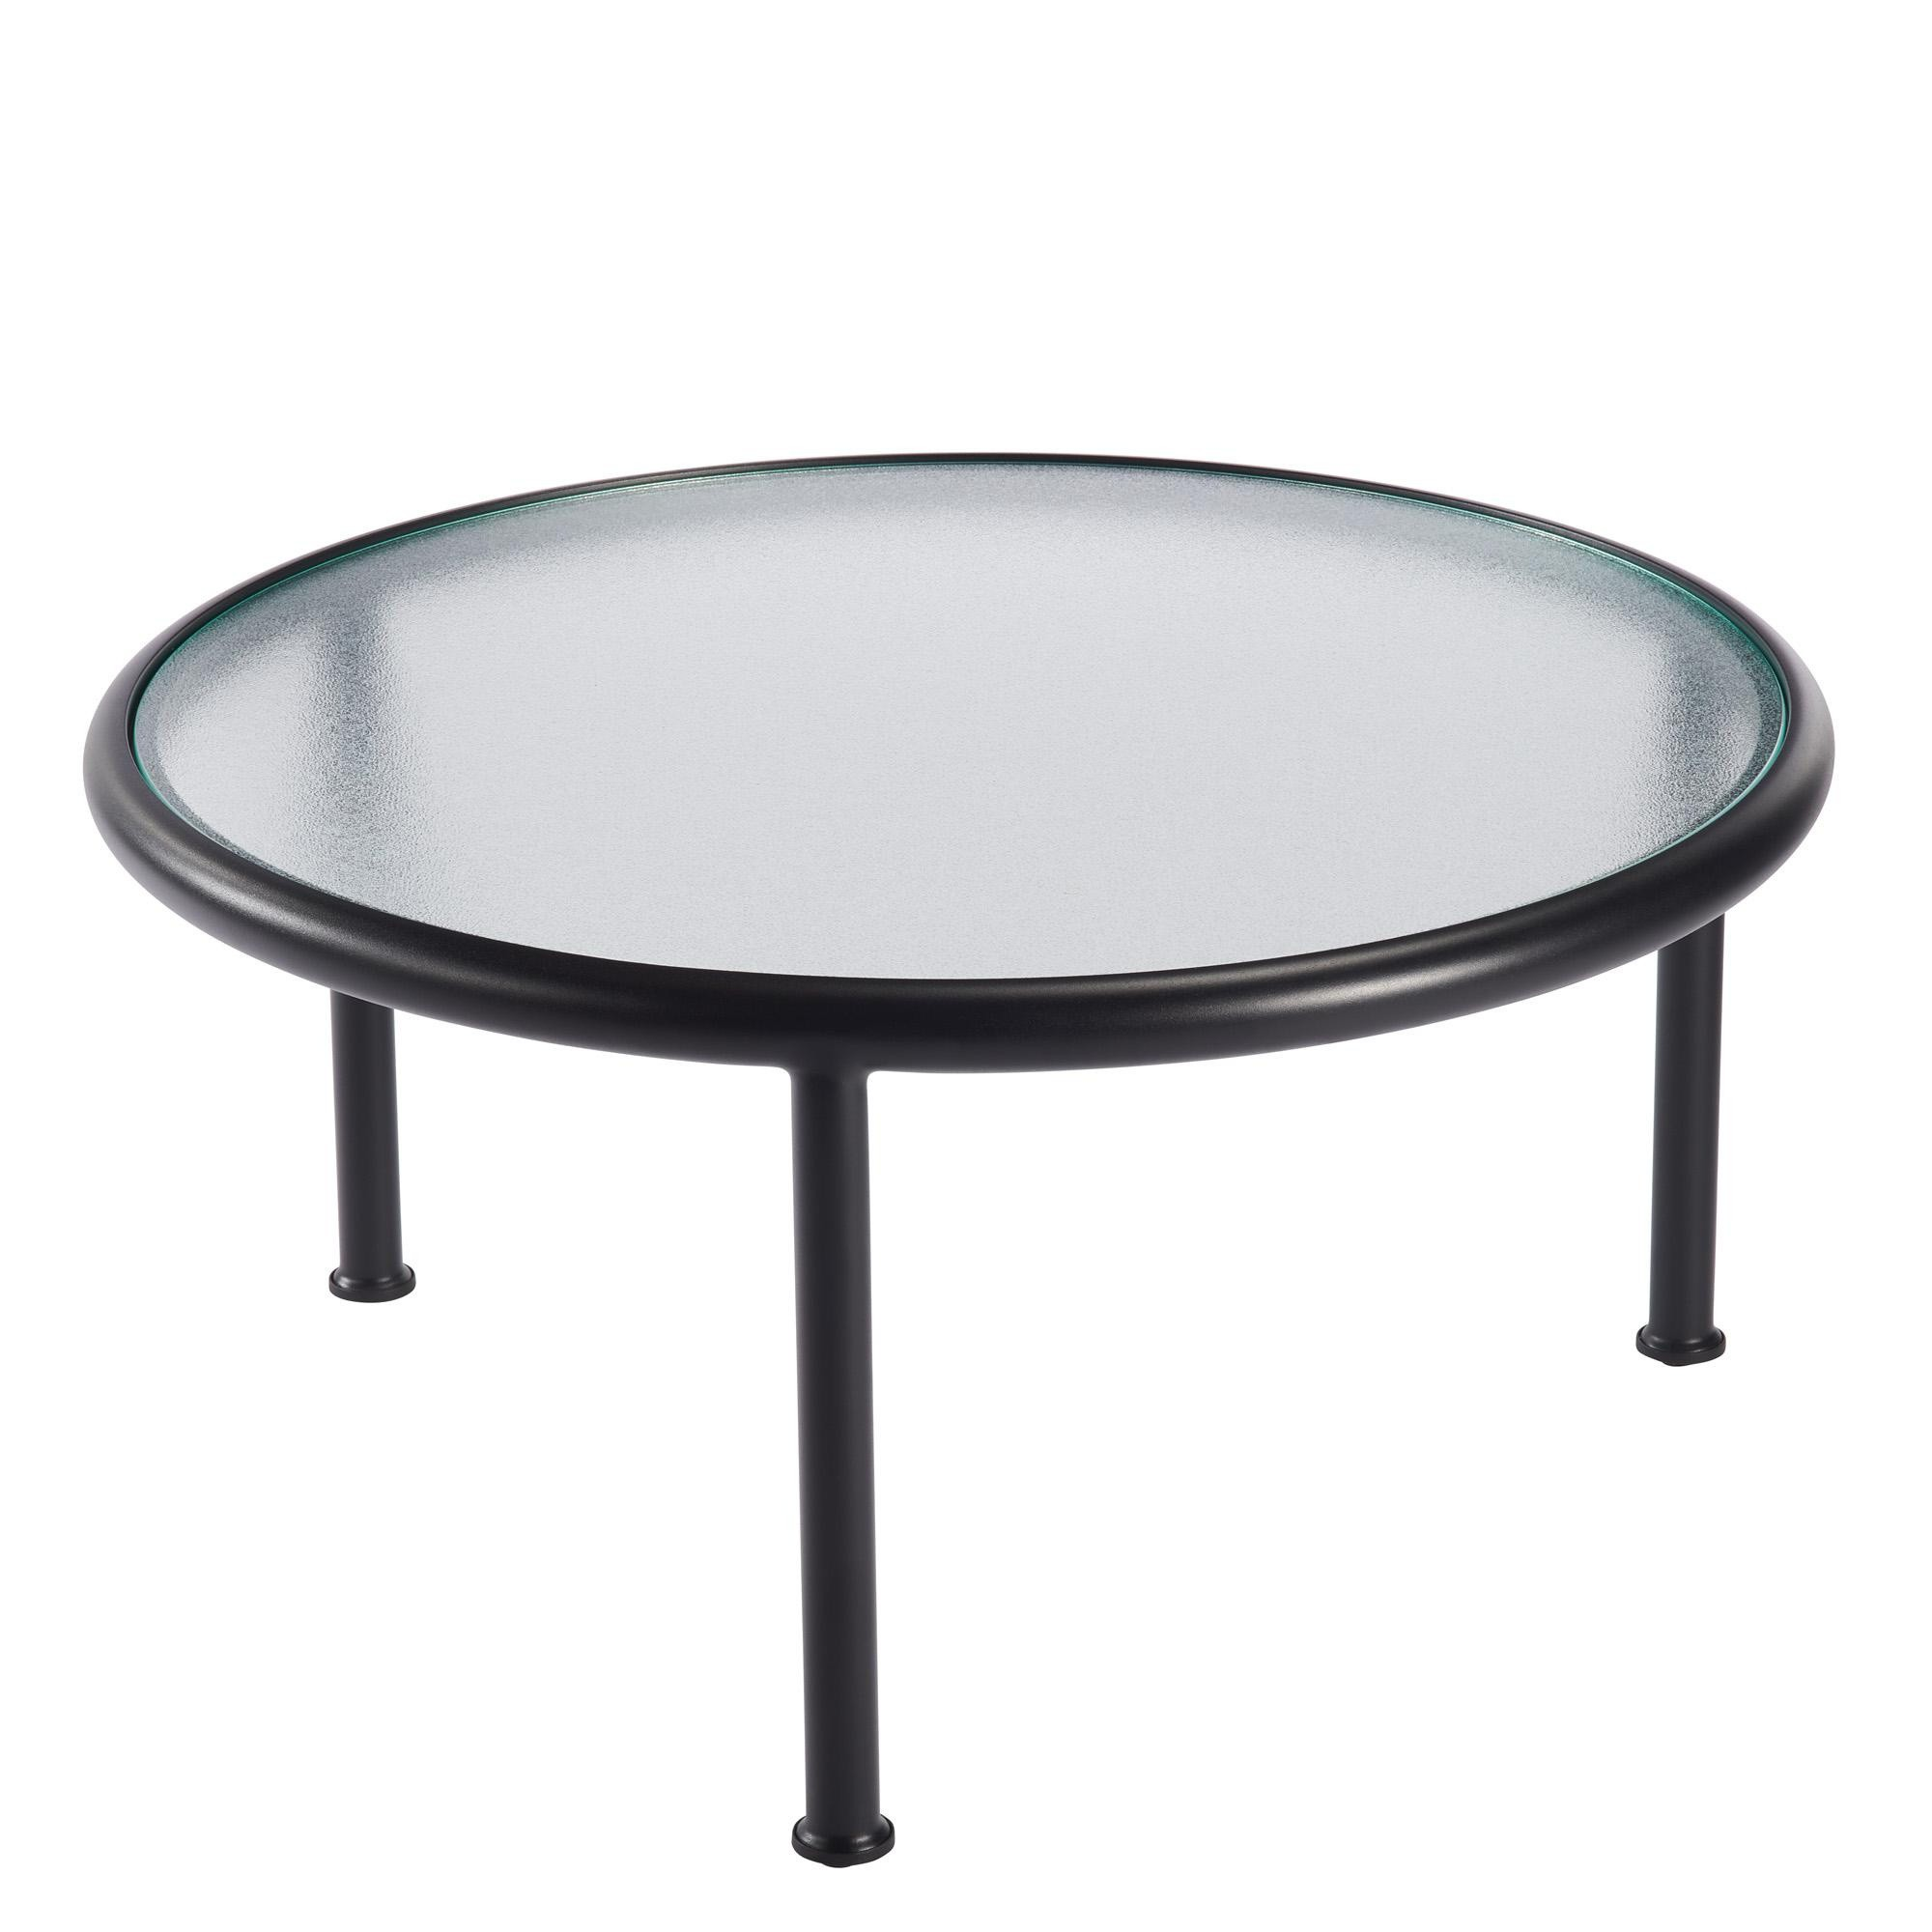 emu dock outdoor side table round ambientedirect garten beistelltisch rund accent black pieces for bedroom stone coffee drawer upcycled door threshold cover silver mirror sofa end